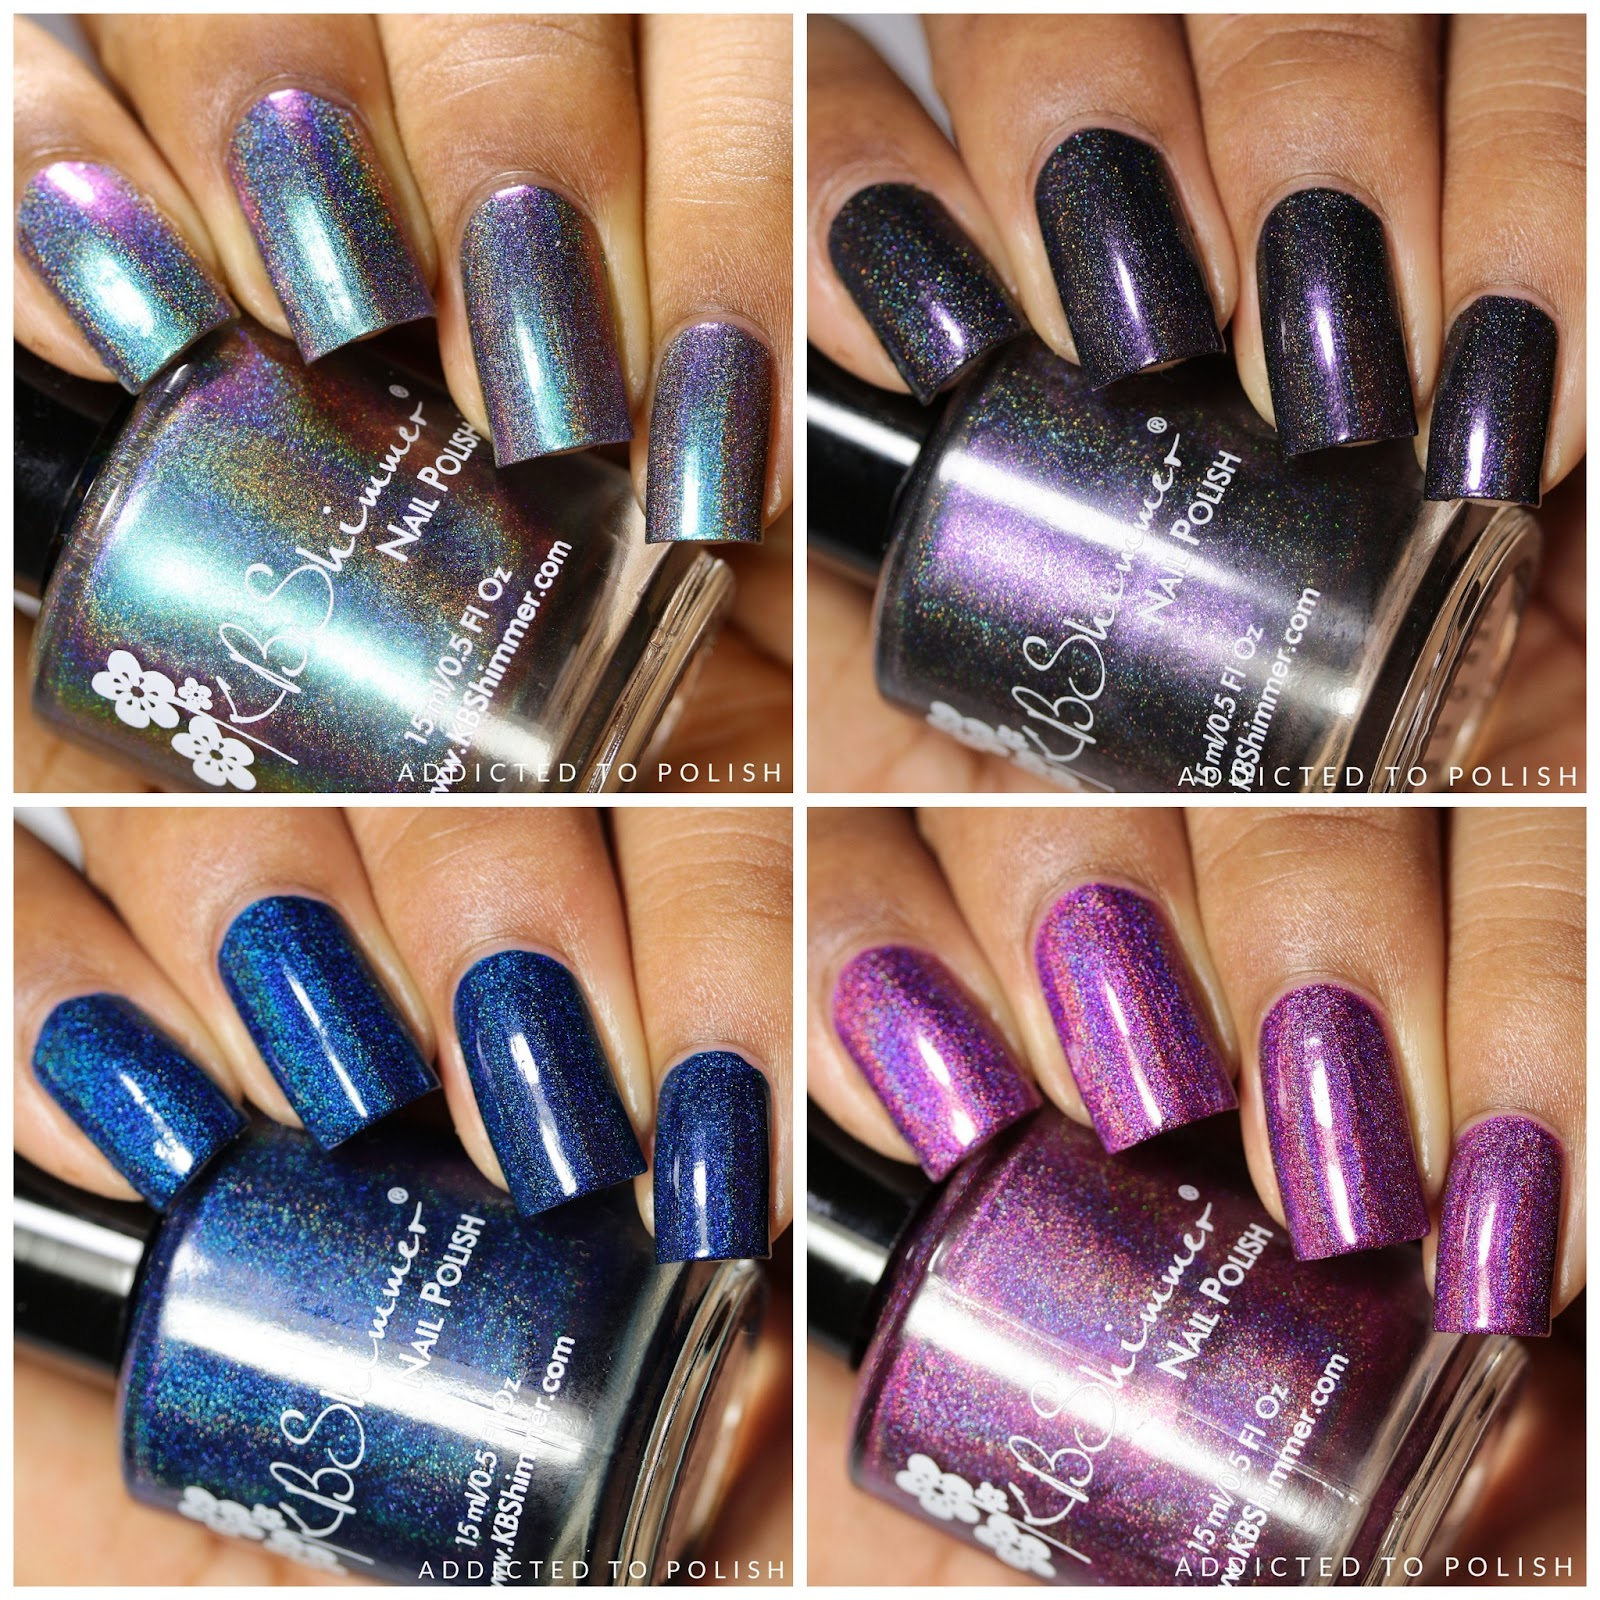 KBShimmer Hella Holo Customs February 2017